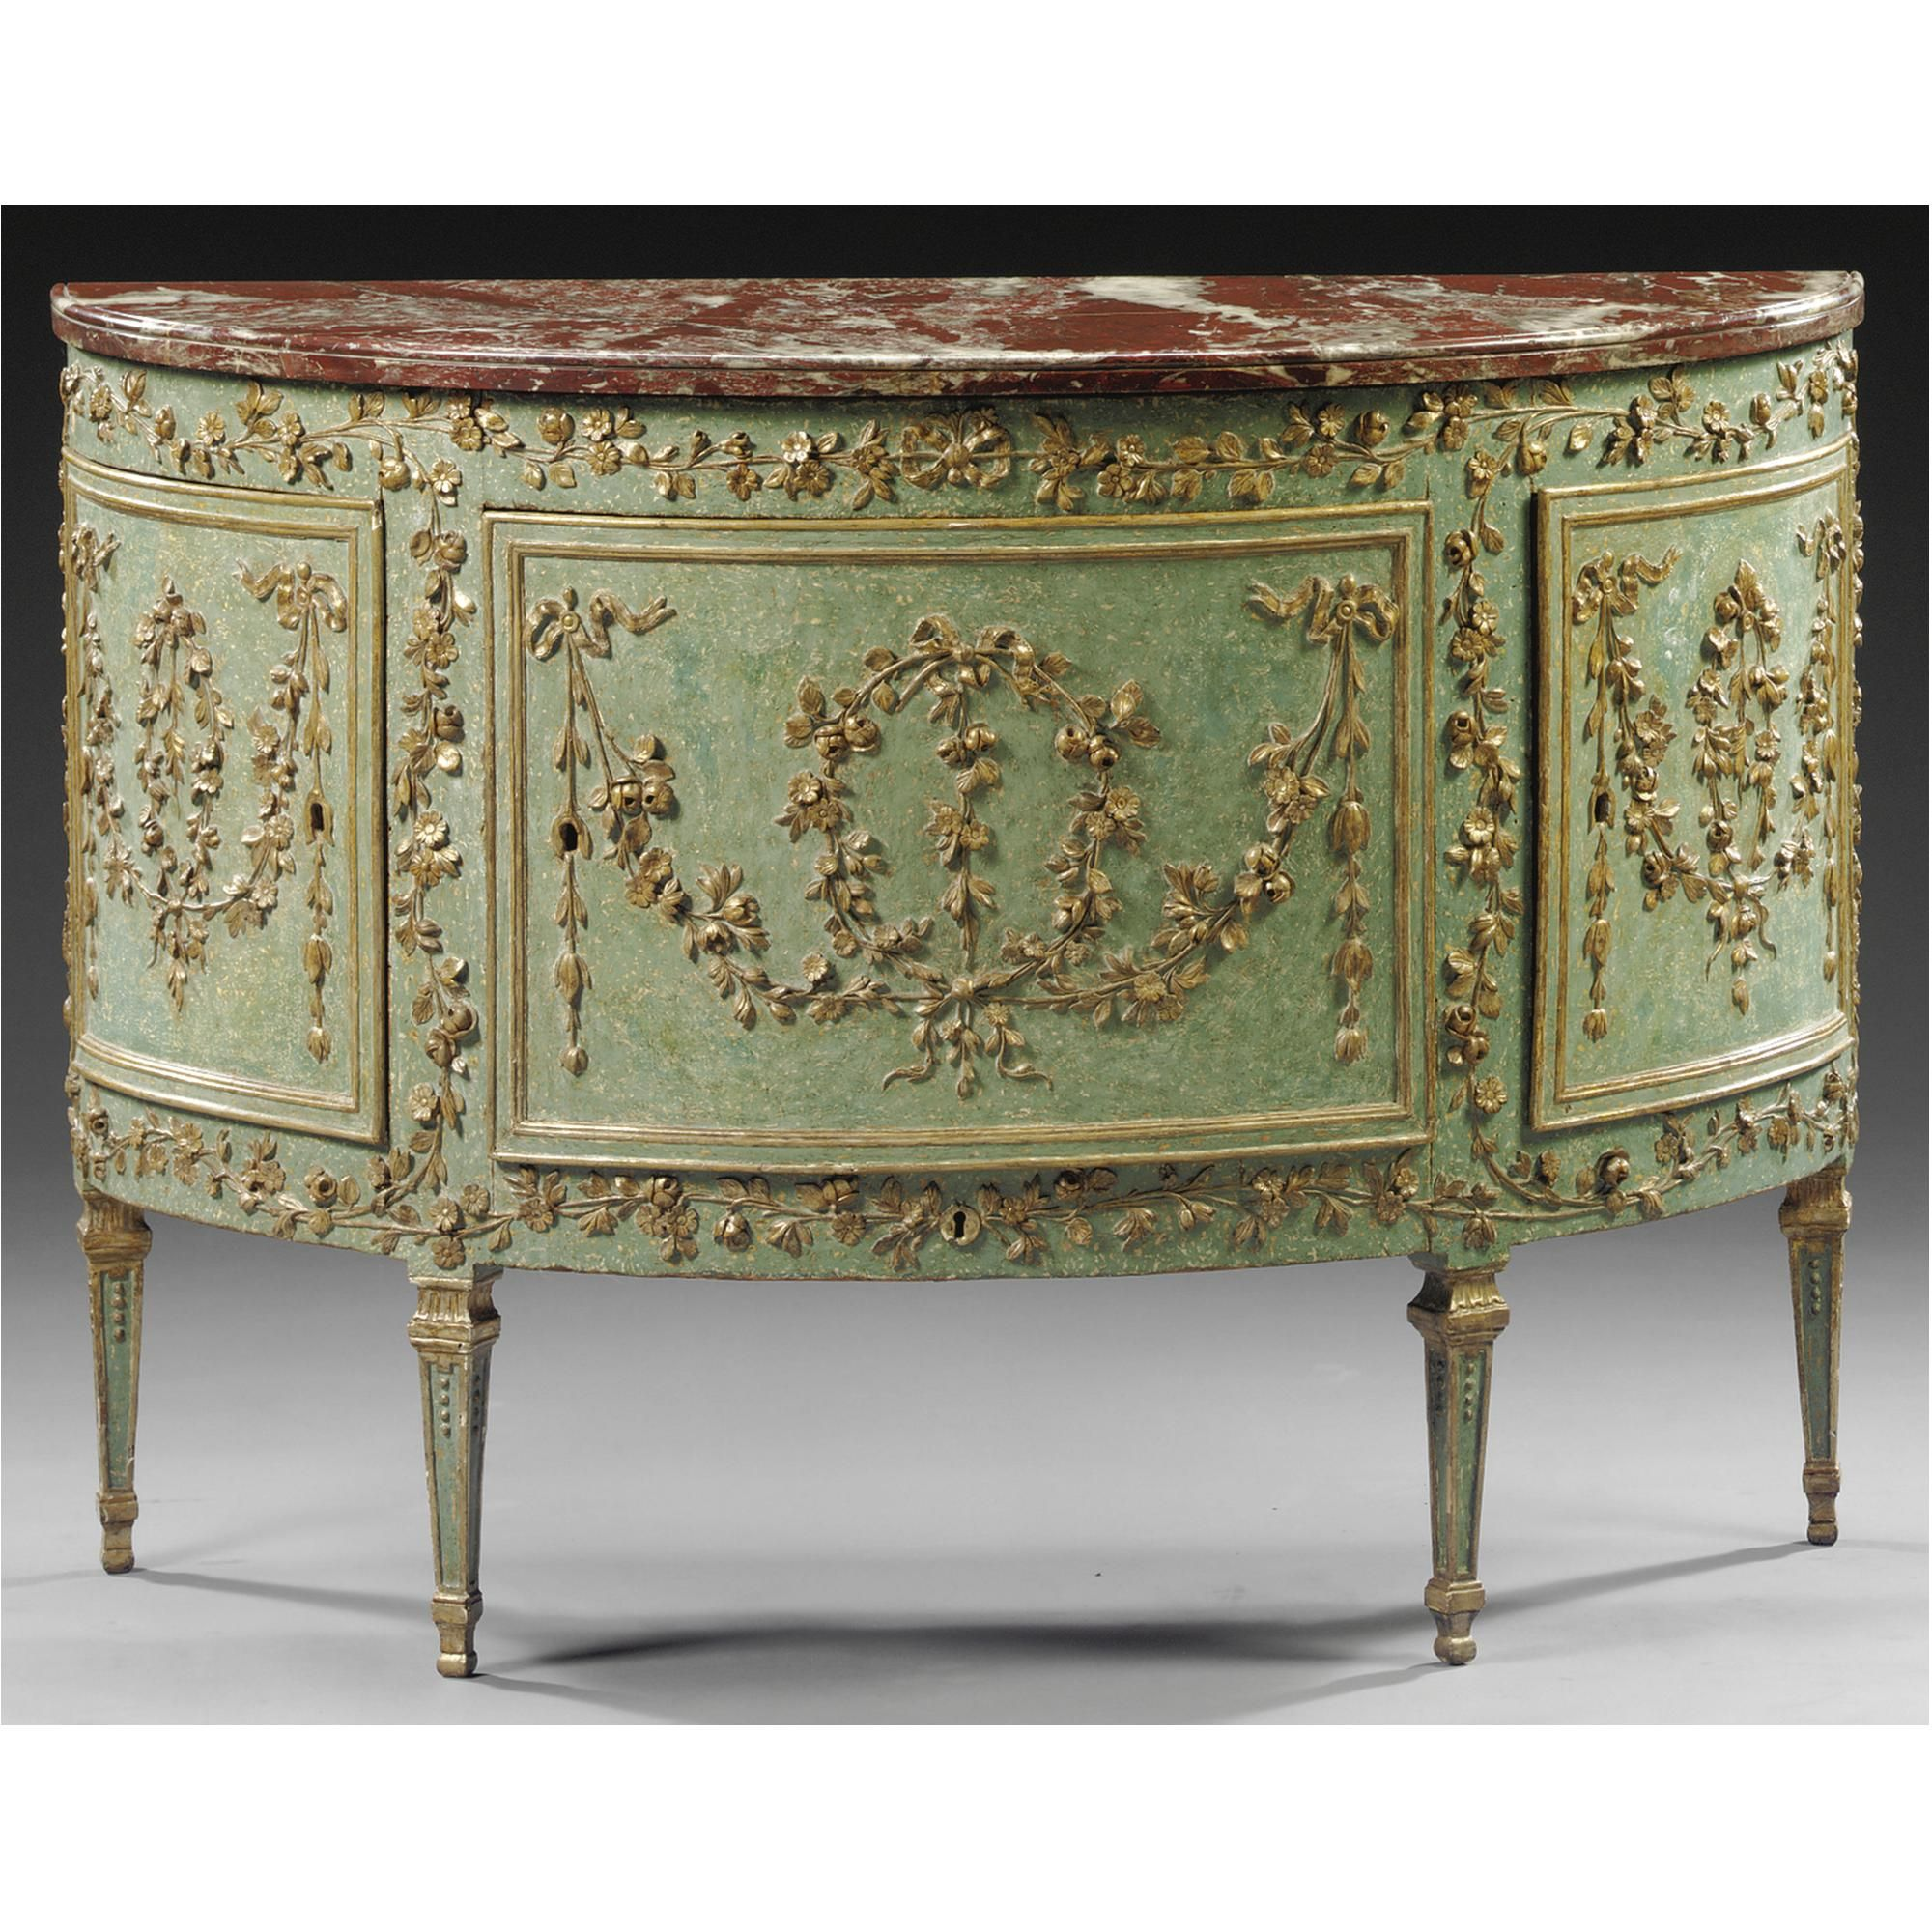 Vintage Furniture A Piedmontese Demi Lune Carved And Painted Wood Commode,